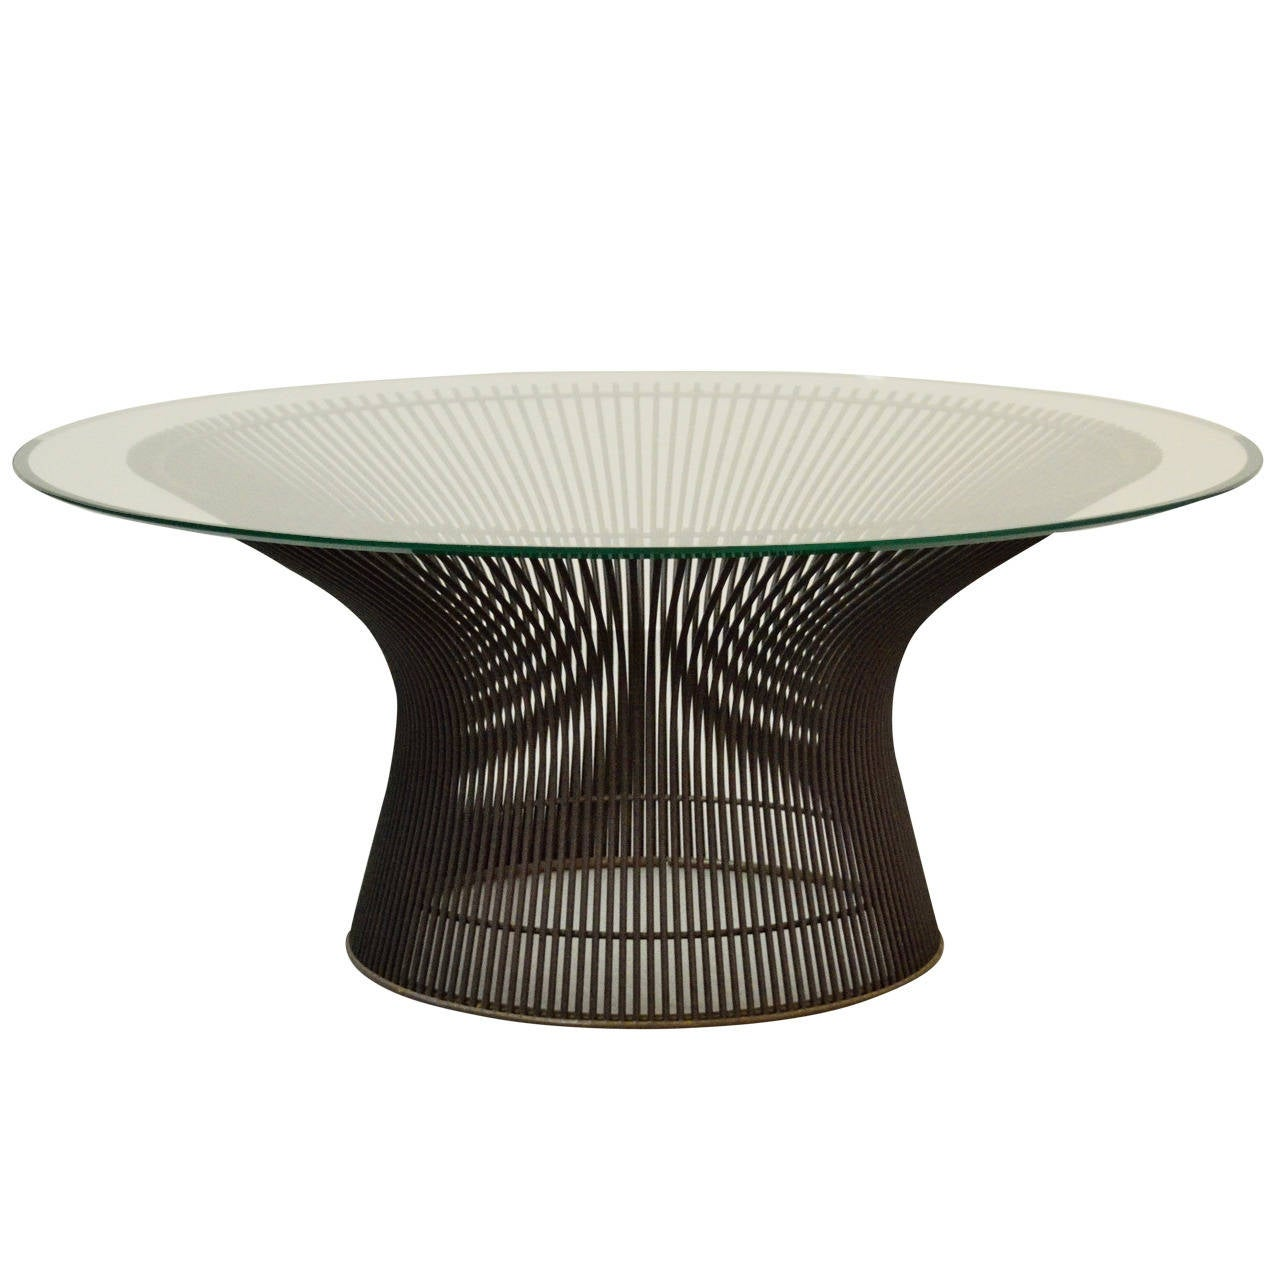 Warren platner bronze coffee table for sale at 1stdibs Bronze coffee tables